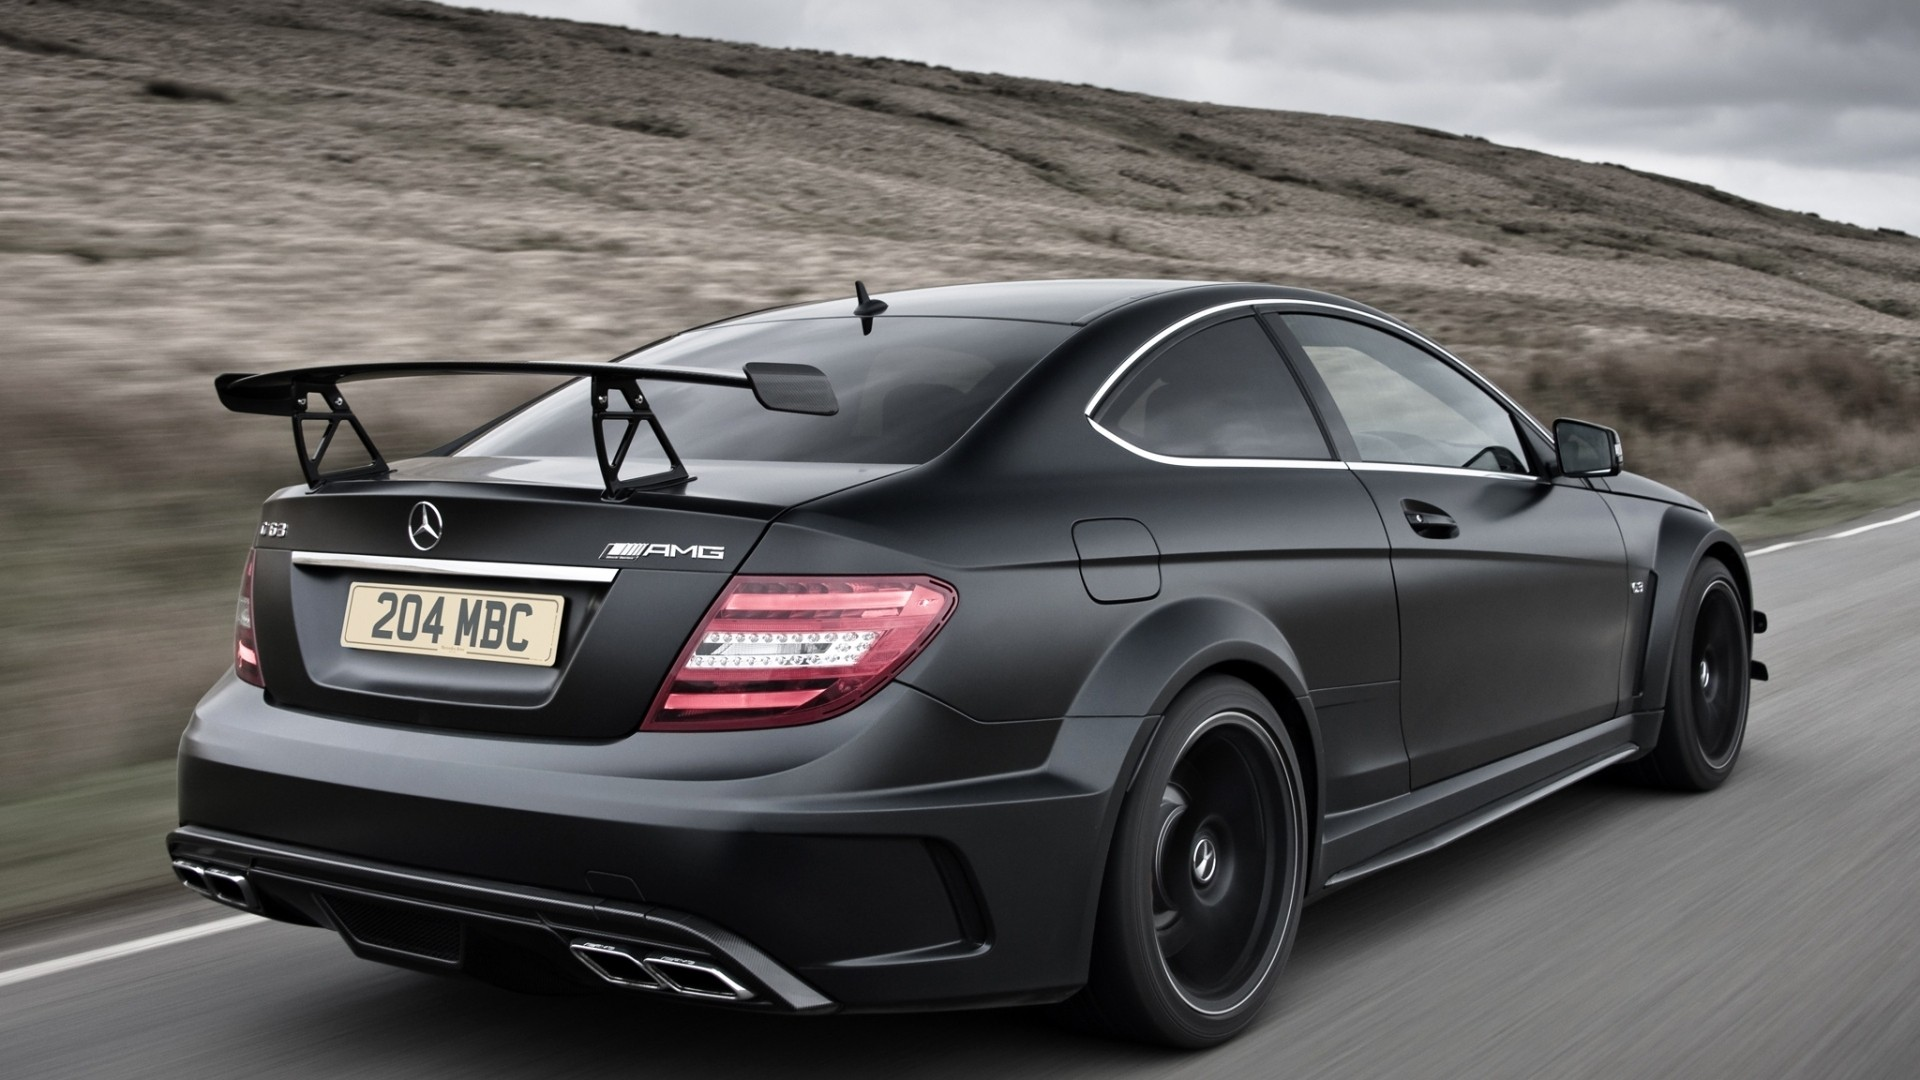 cars amg mercedes benz c63 amg black cars black edition